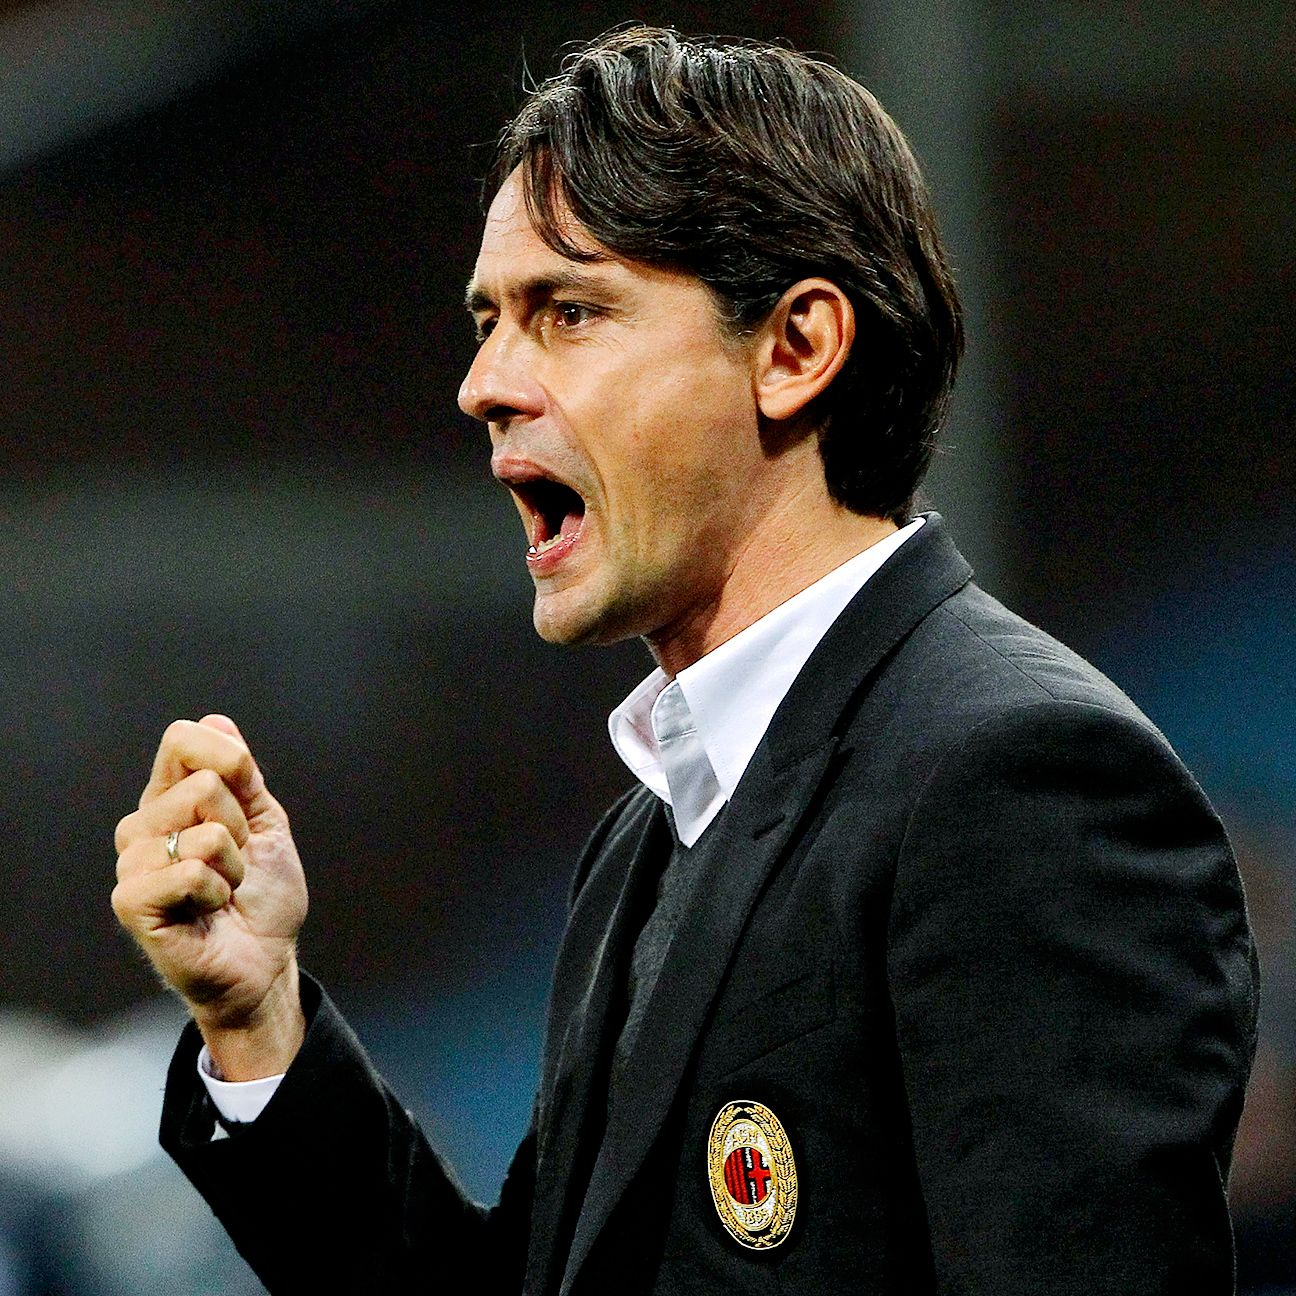 Pippo Inzaghi will be seeking victory in his first Milan derby as AC Milan manager.